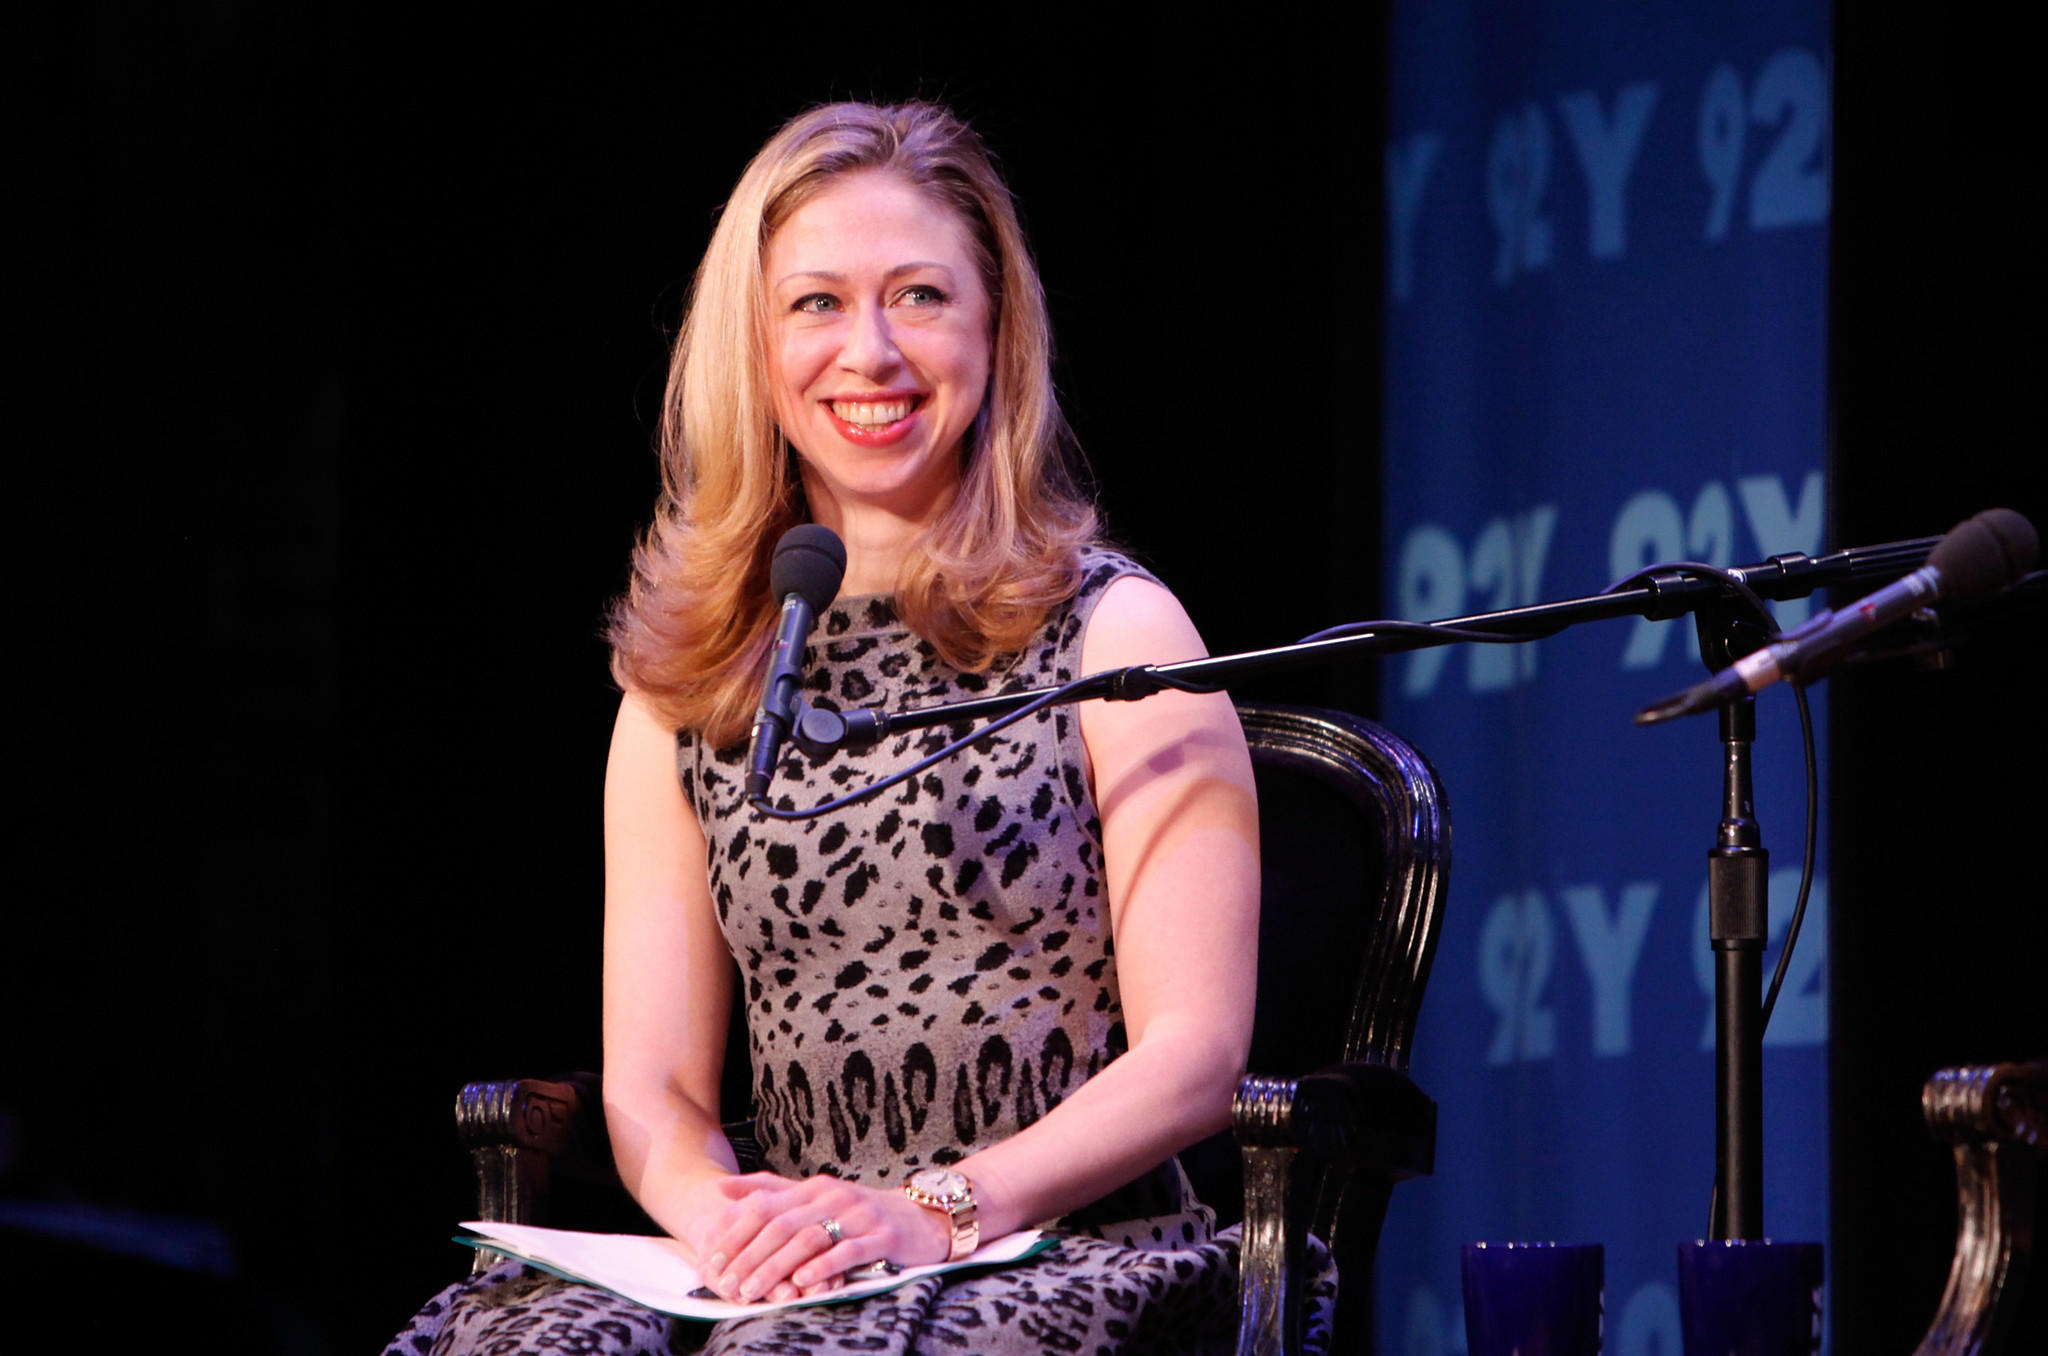 Moderator Chelsea Clinton speaks at Women In Politics Panel With Chelsea Clinton hosted by Glamour magazine at 92nd Street Y on March 28, 2012 in New York City.